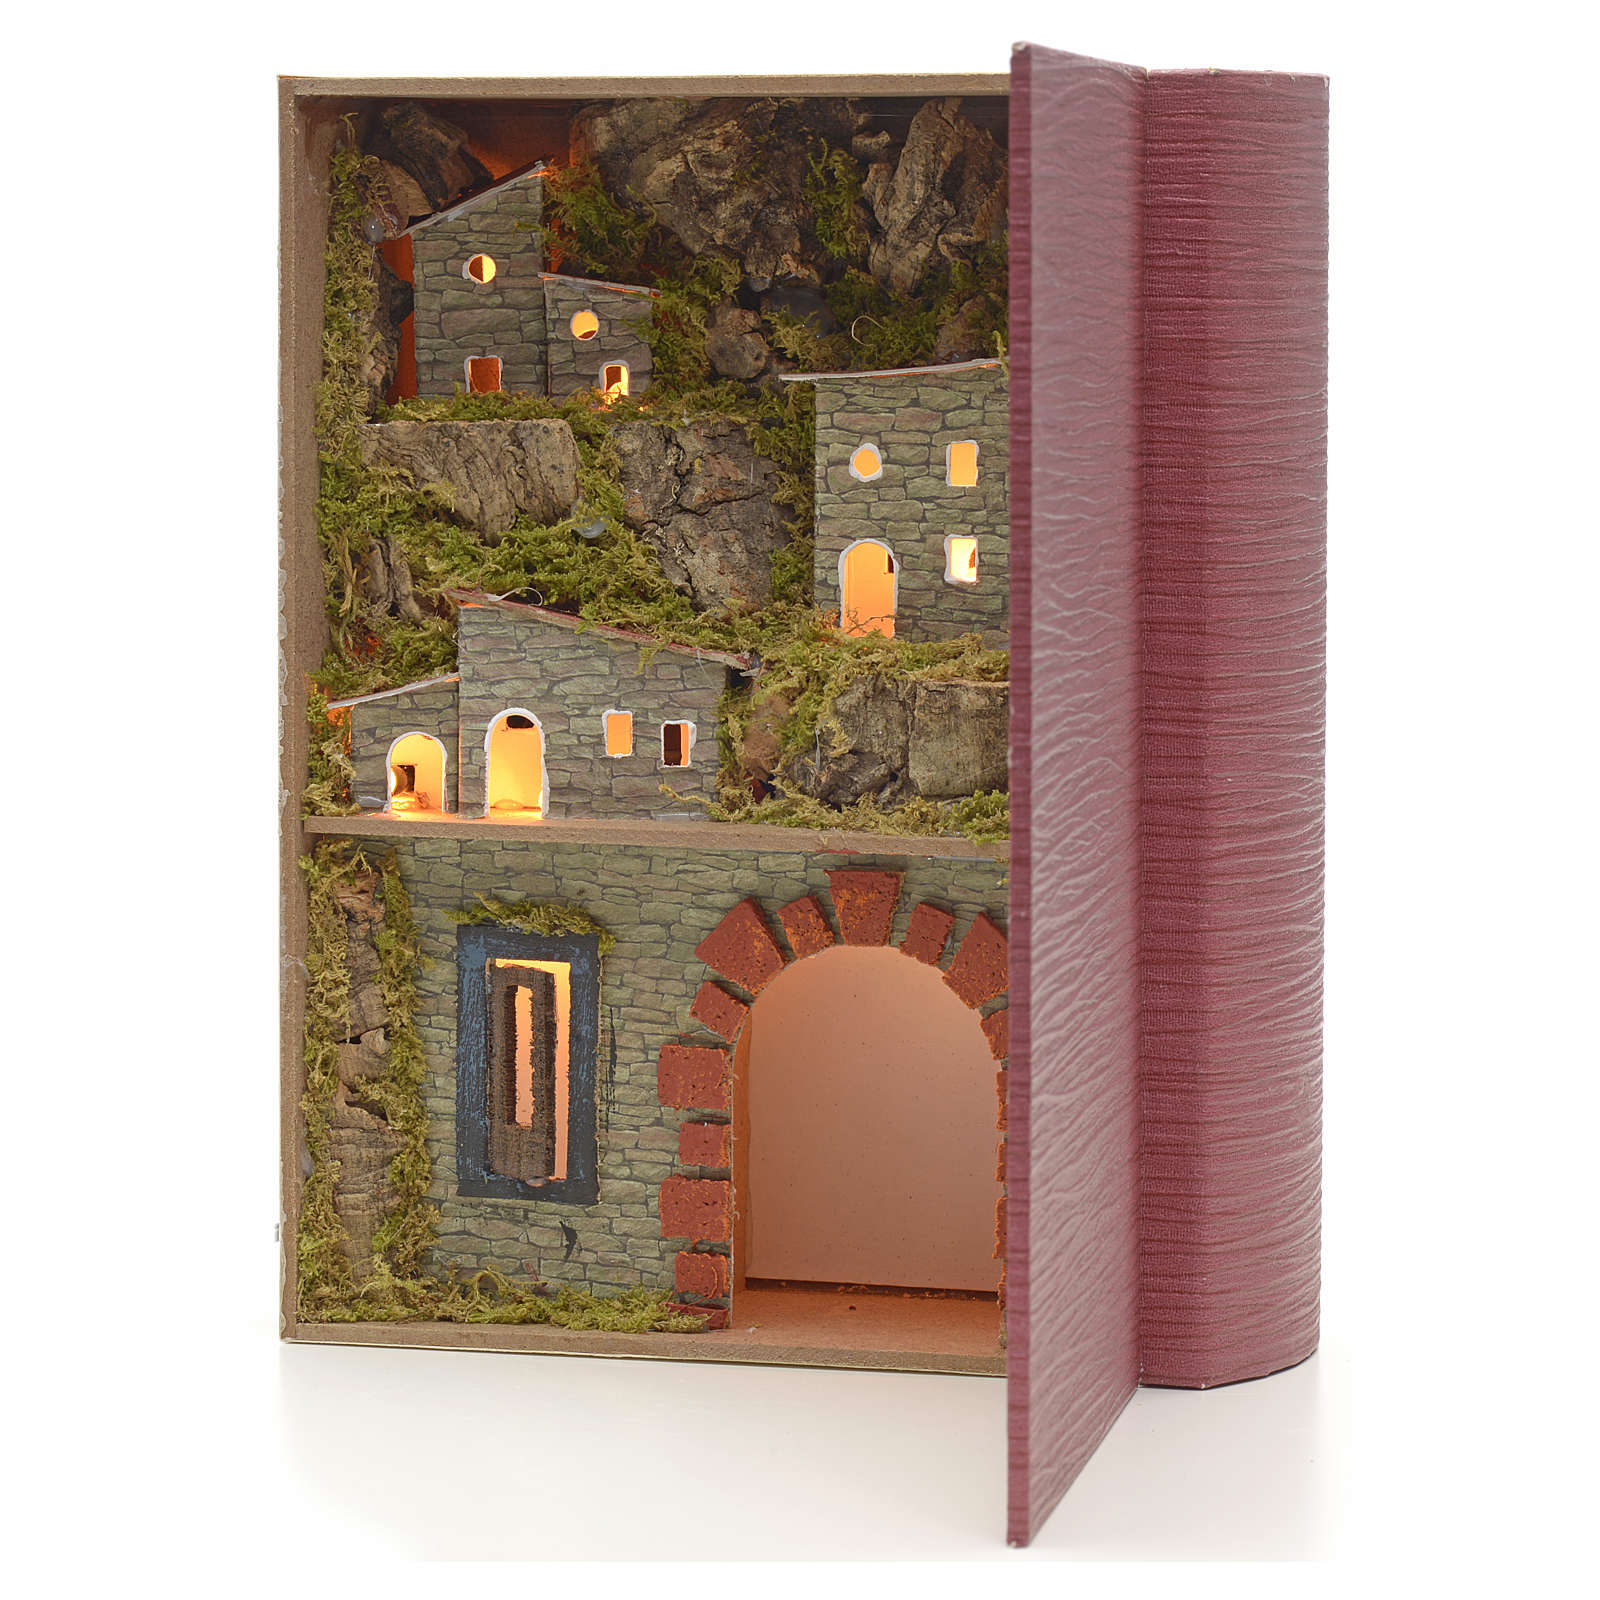 Illuminated village with grotto for nativities inside a book 24x 4